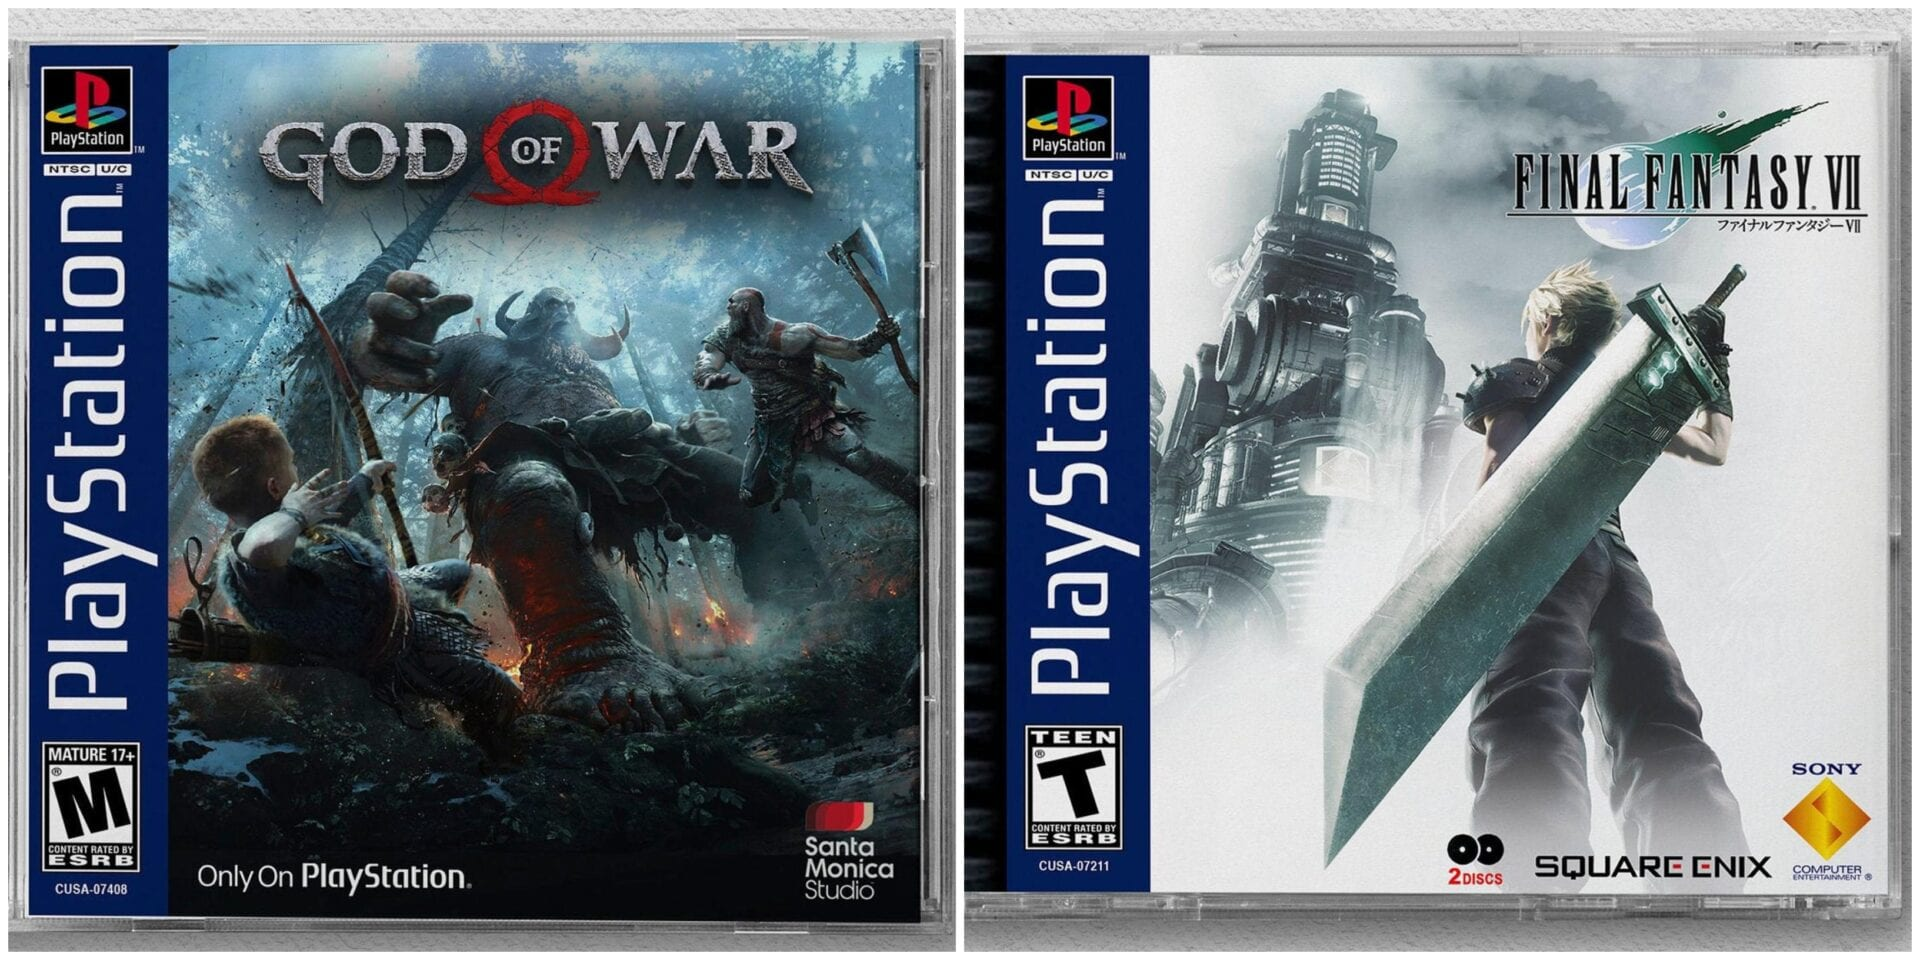 ps1 game cases ,ps4, god of war, final fantasy